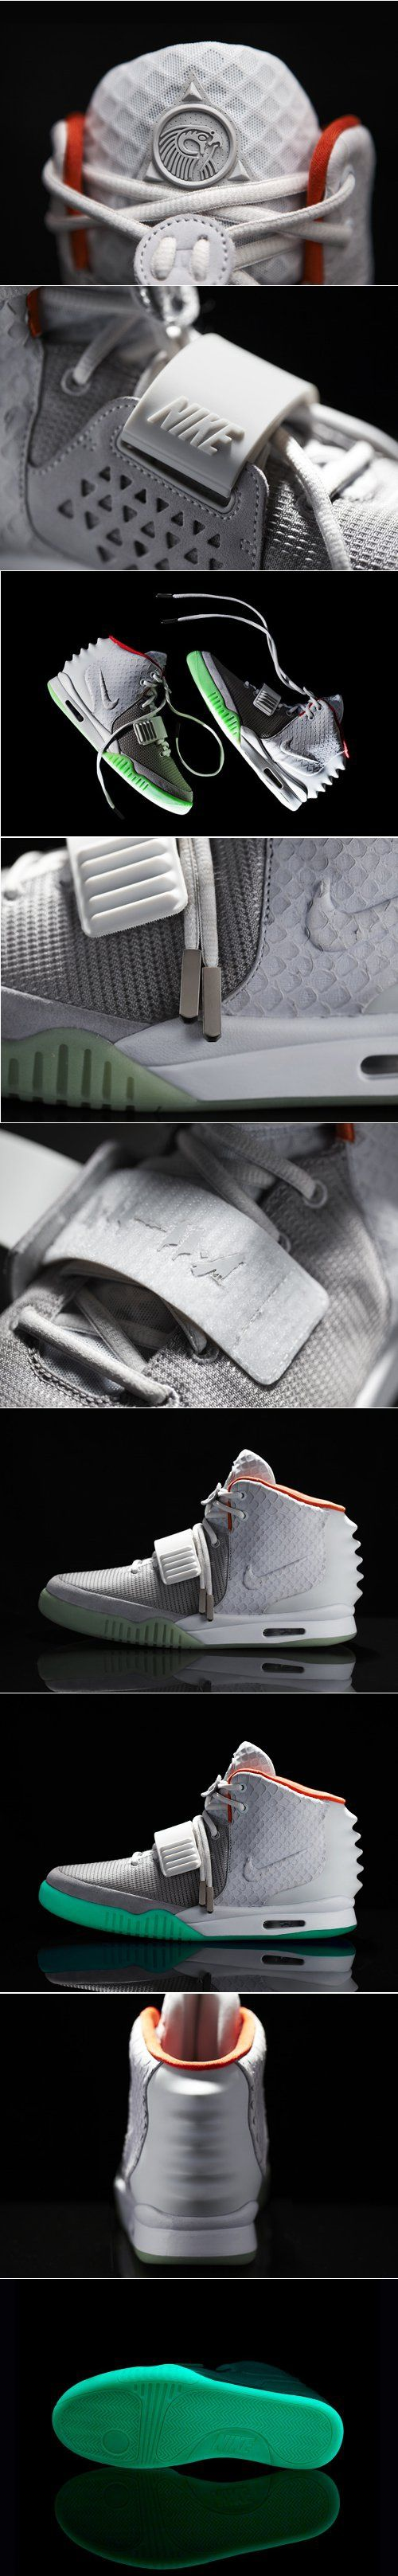 Ultimate Sneaker Laundry System In 2020 Yeezy Yeezy Shoes Air